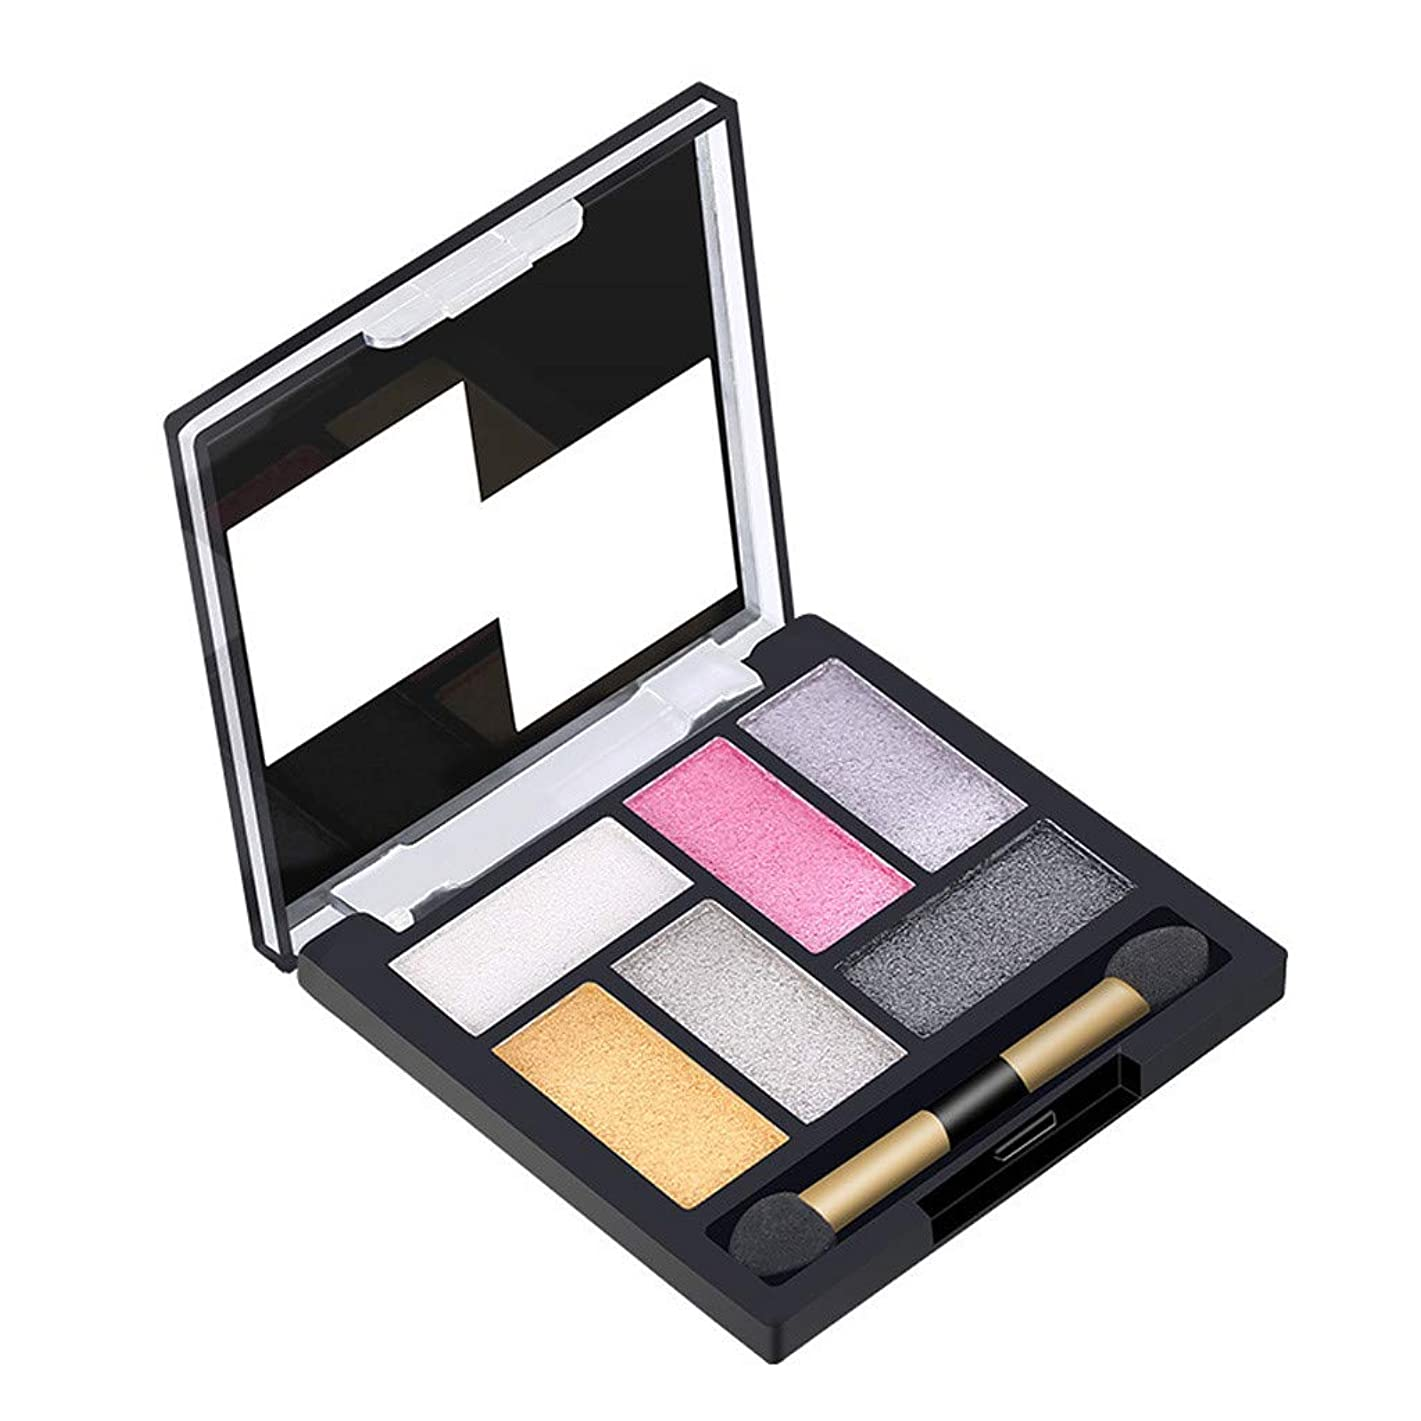 6 Colors Eyeshadow Cosmetic Matte Eye Shadow Cream Makeup Palette Pearlescent Shimmer Set